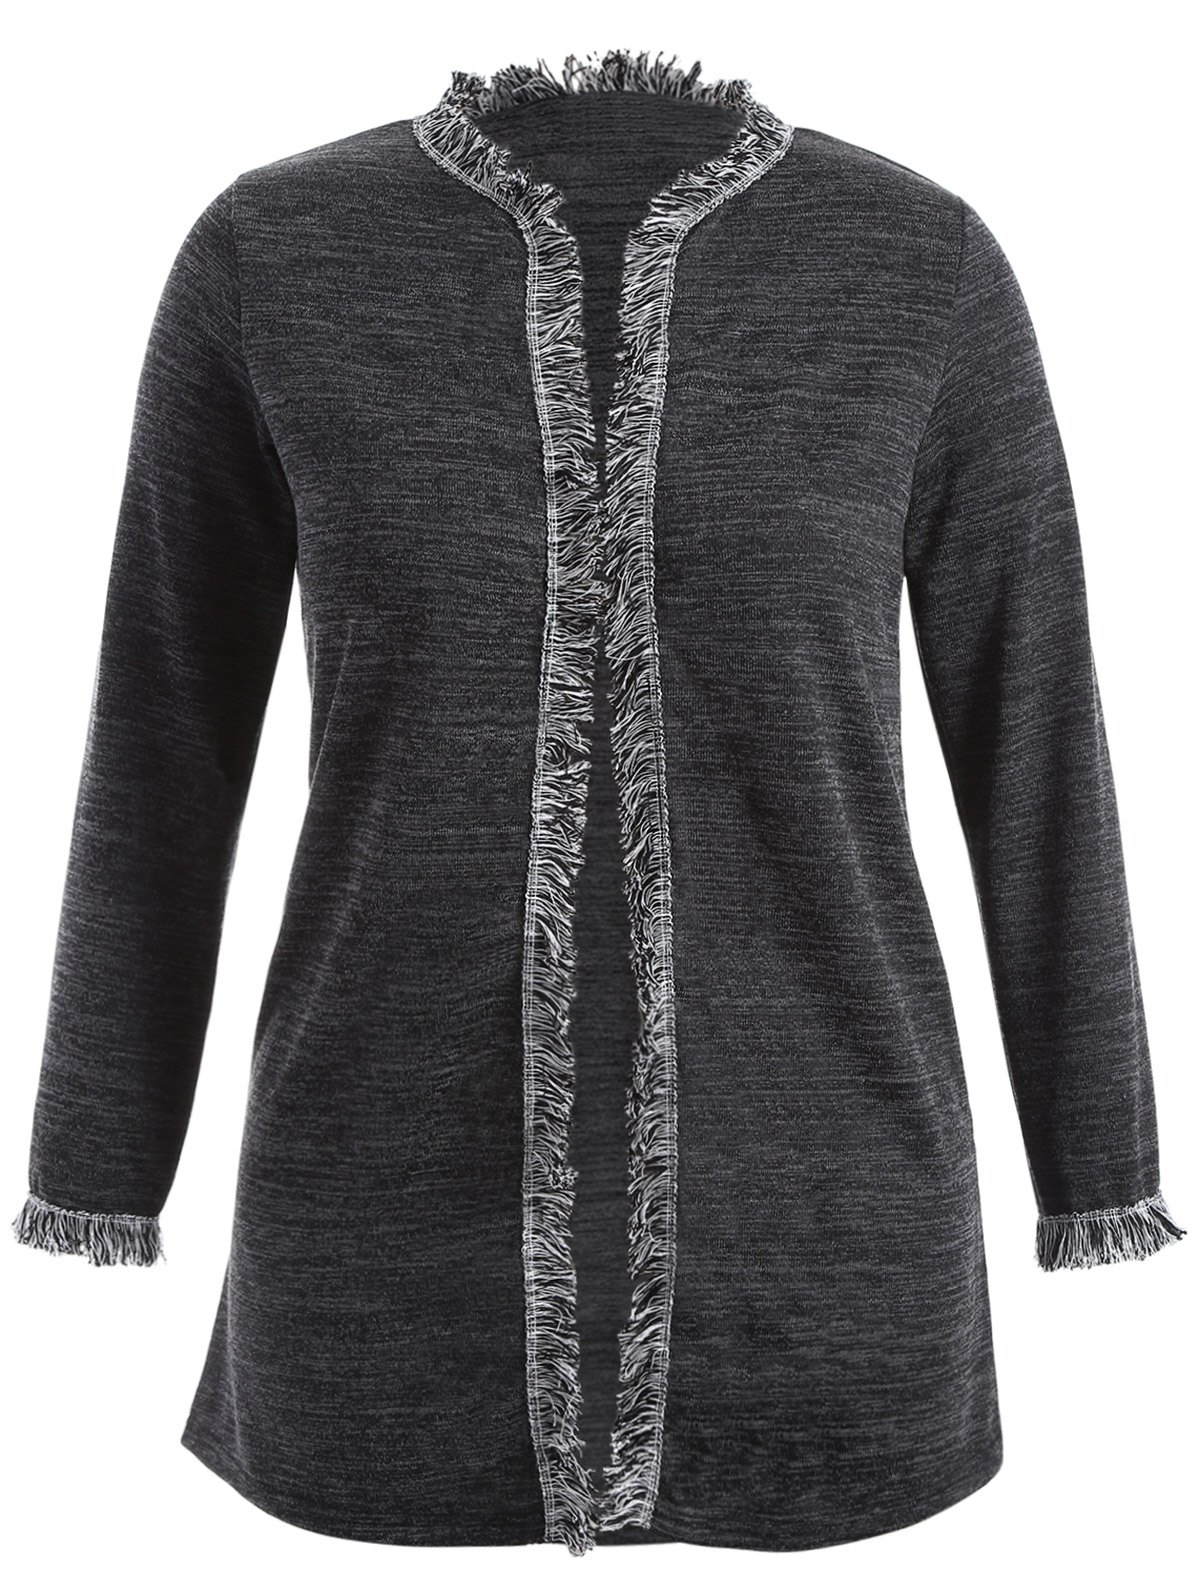 Fringed Plus Size Cardigan - DEEP GRAY 3XL